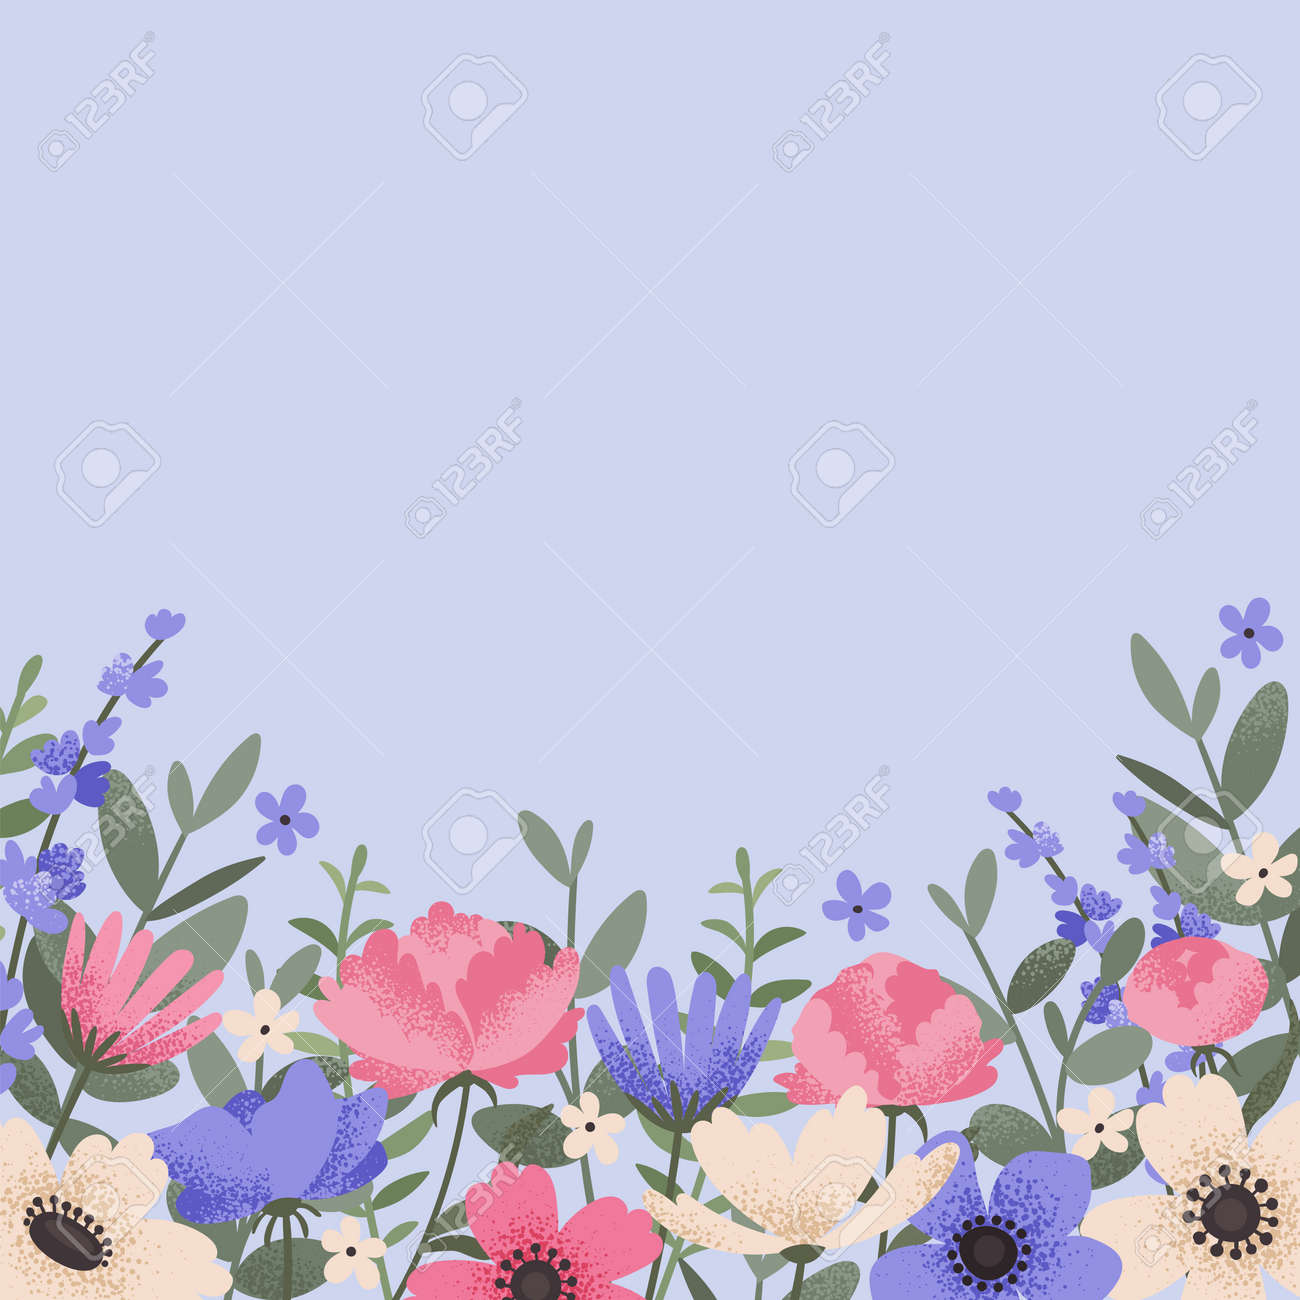 Floral background design with summer flowers. Greeting card with place for text. Template for invitation card with beautiful peonies and anemone flowers. Vector illustration - 164590709